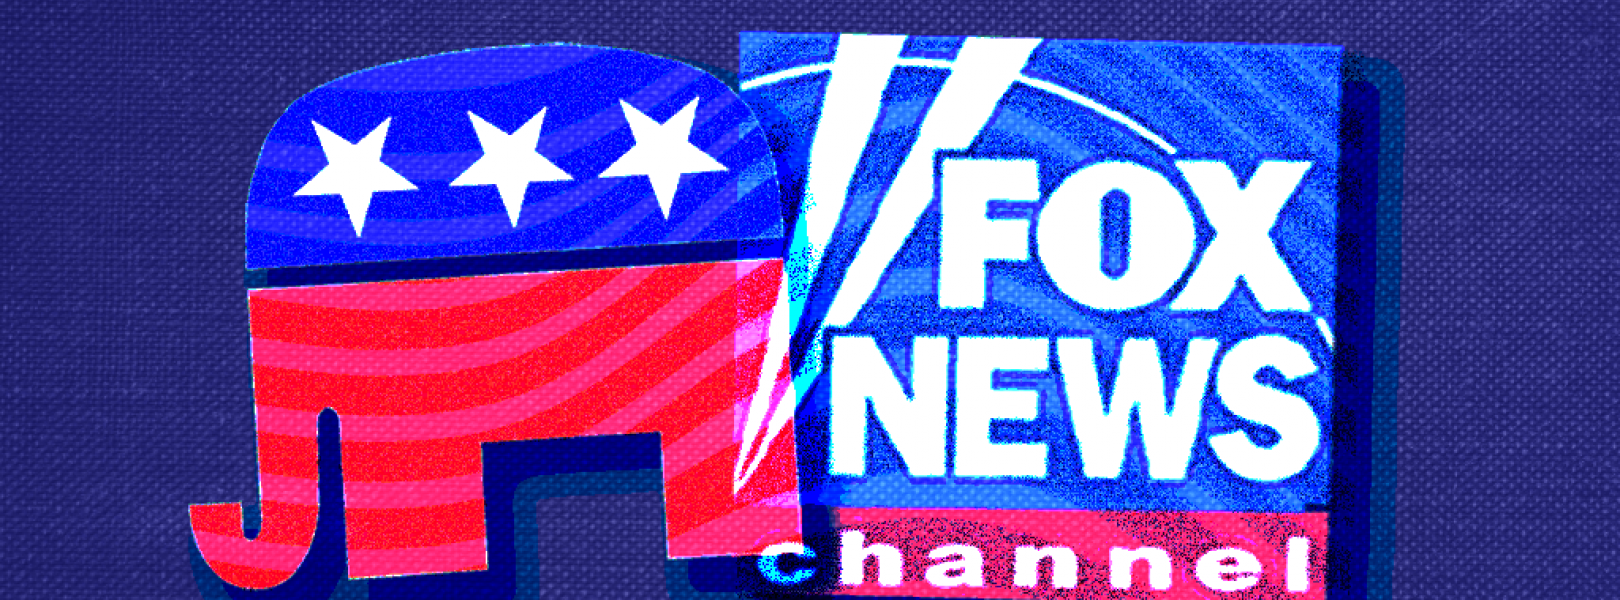 Fox News is a loaded gun aimed at American democracy